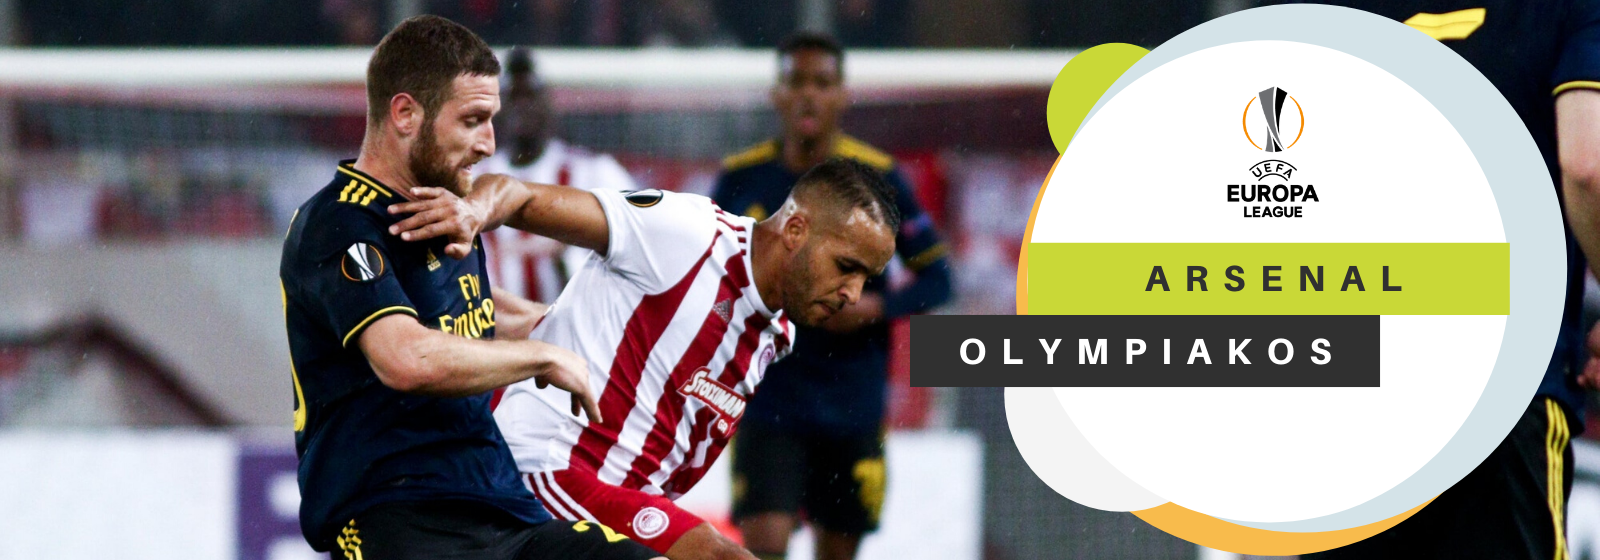 Asianodds: Arsenal vs Olympiakos Odds for February 27, 2020